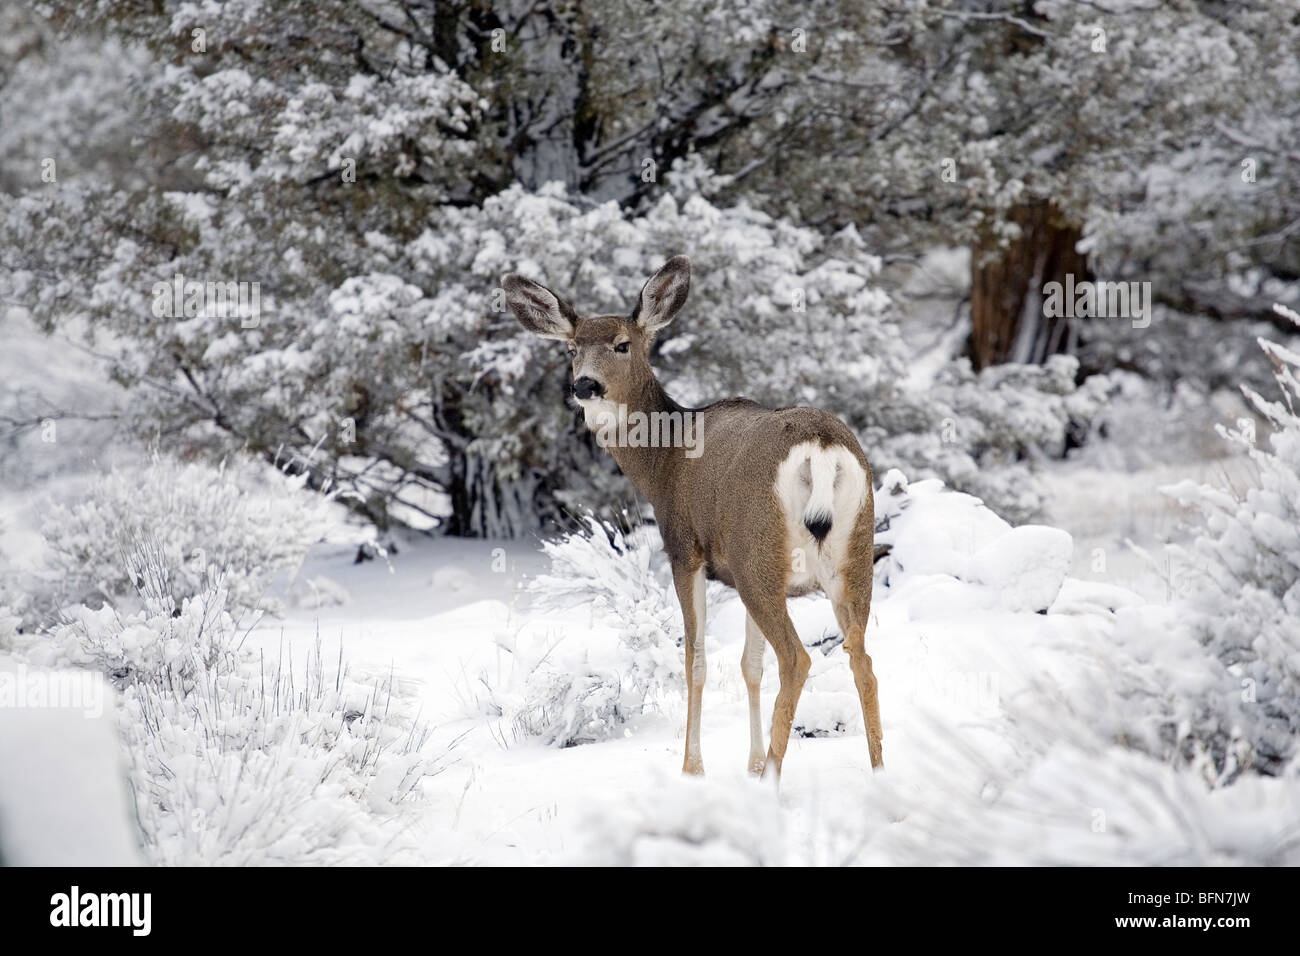 Mule deer browse in the Badlands Wilderness during a winter snowstorm. - Stock Image